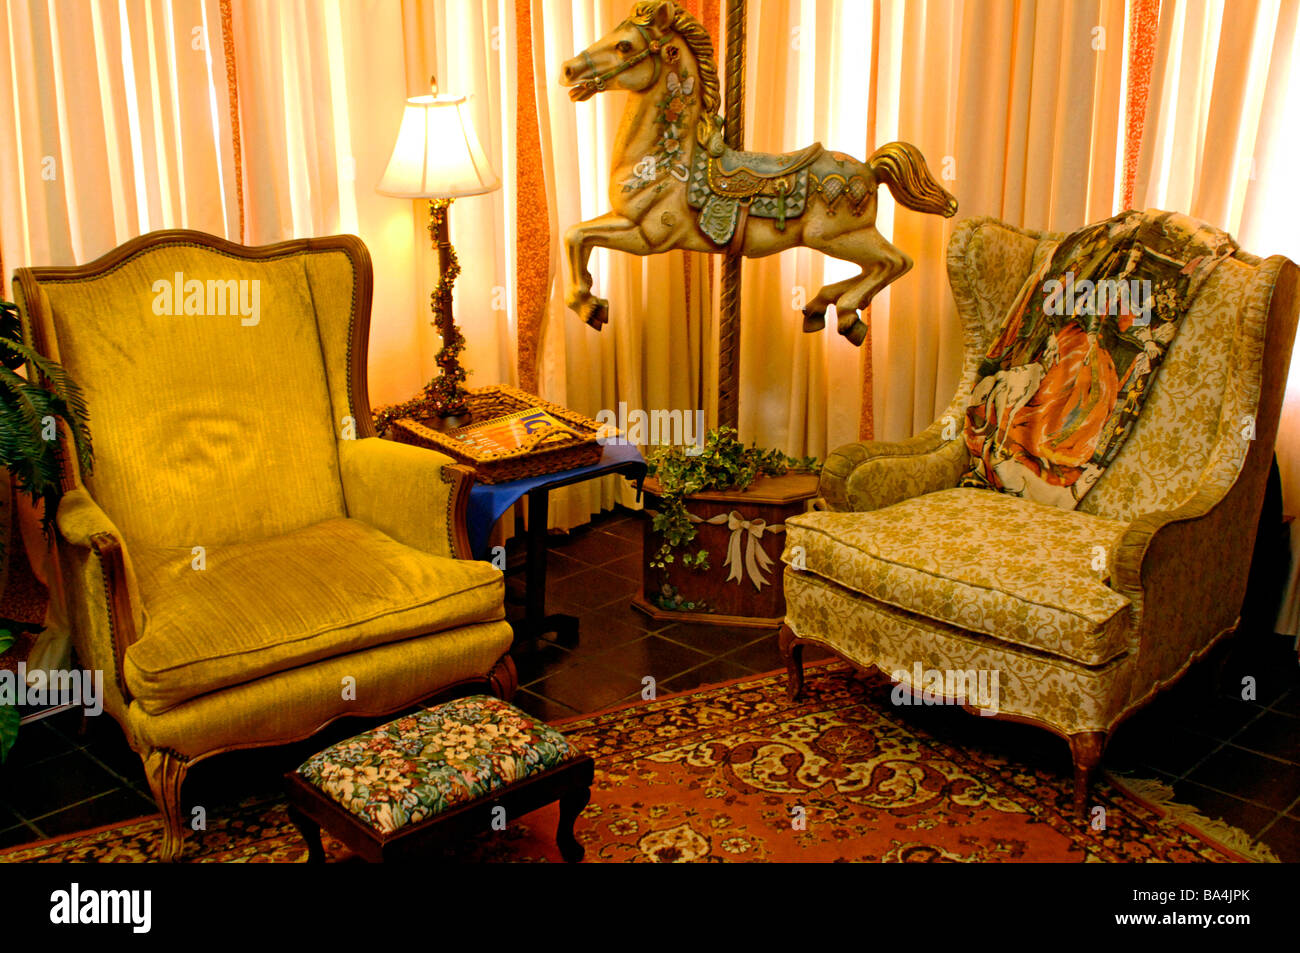 Seventies interior decorating complete with carousel horse Stock ...